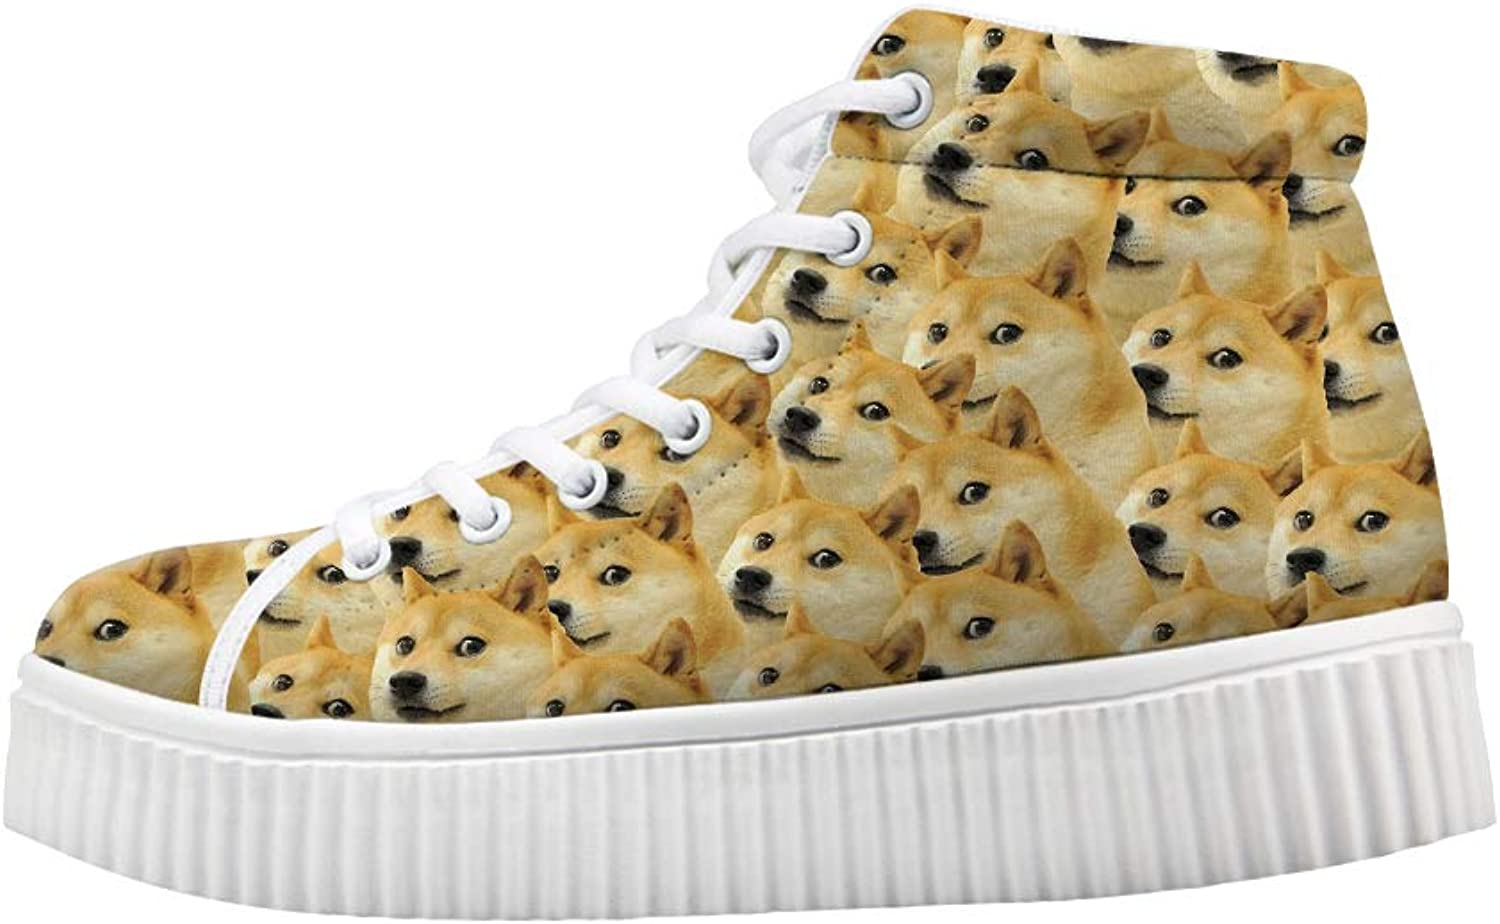 Owaheson Platform Lace up Sneaker Casual Chunky Walking shoes High Top Women Doge Meme Trypophobia